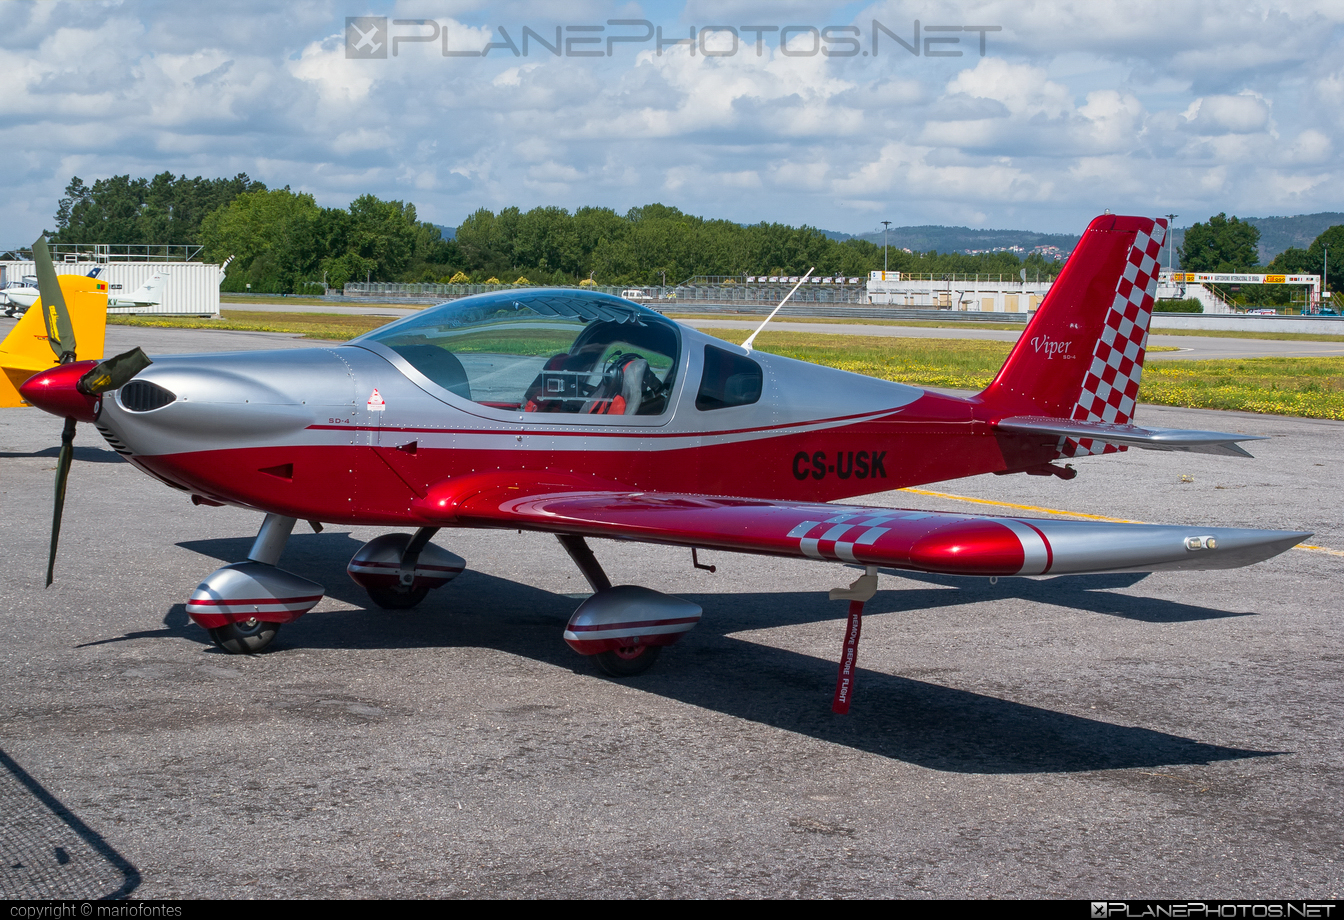 Tomark SD4 Viper - CS-USK operated by Private operator #sd4viper #tomark